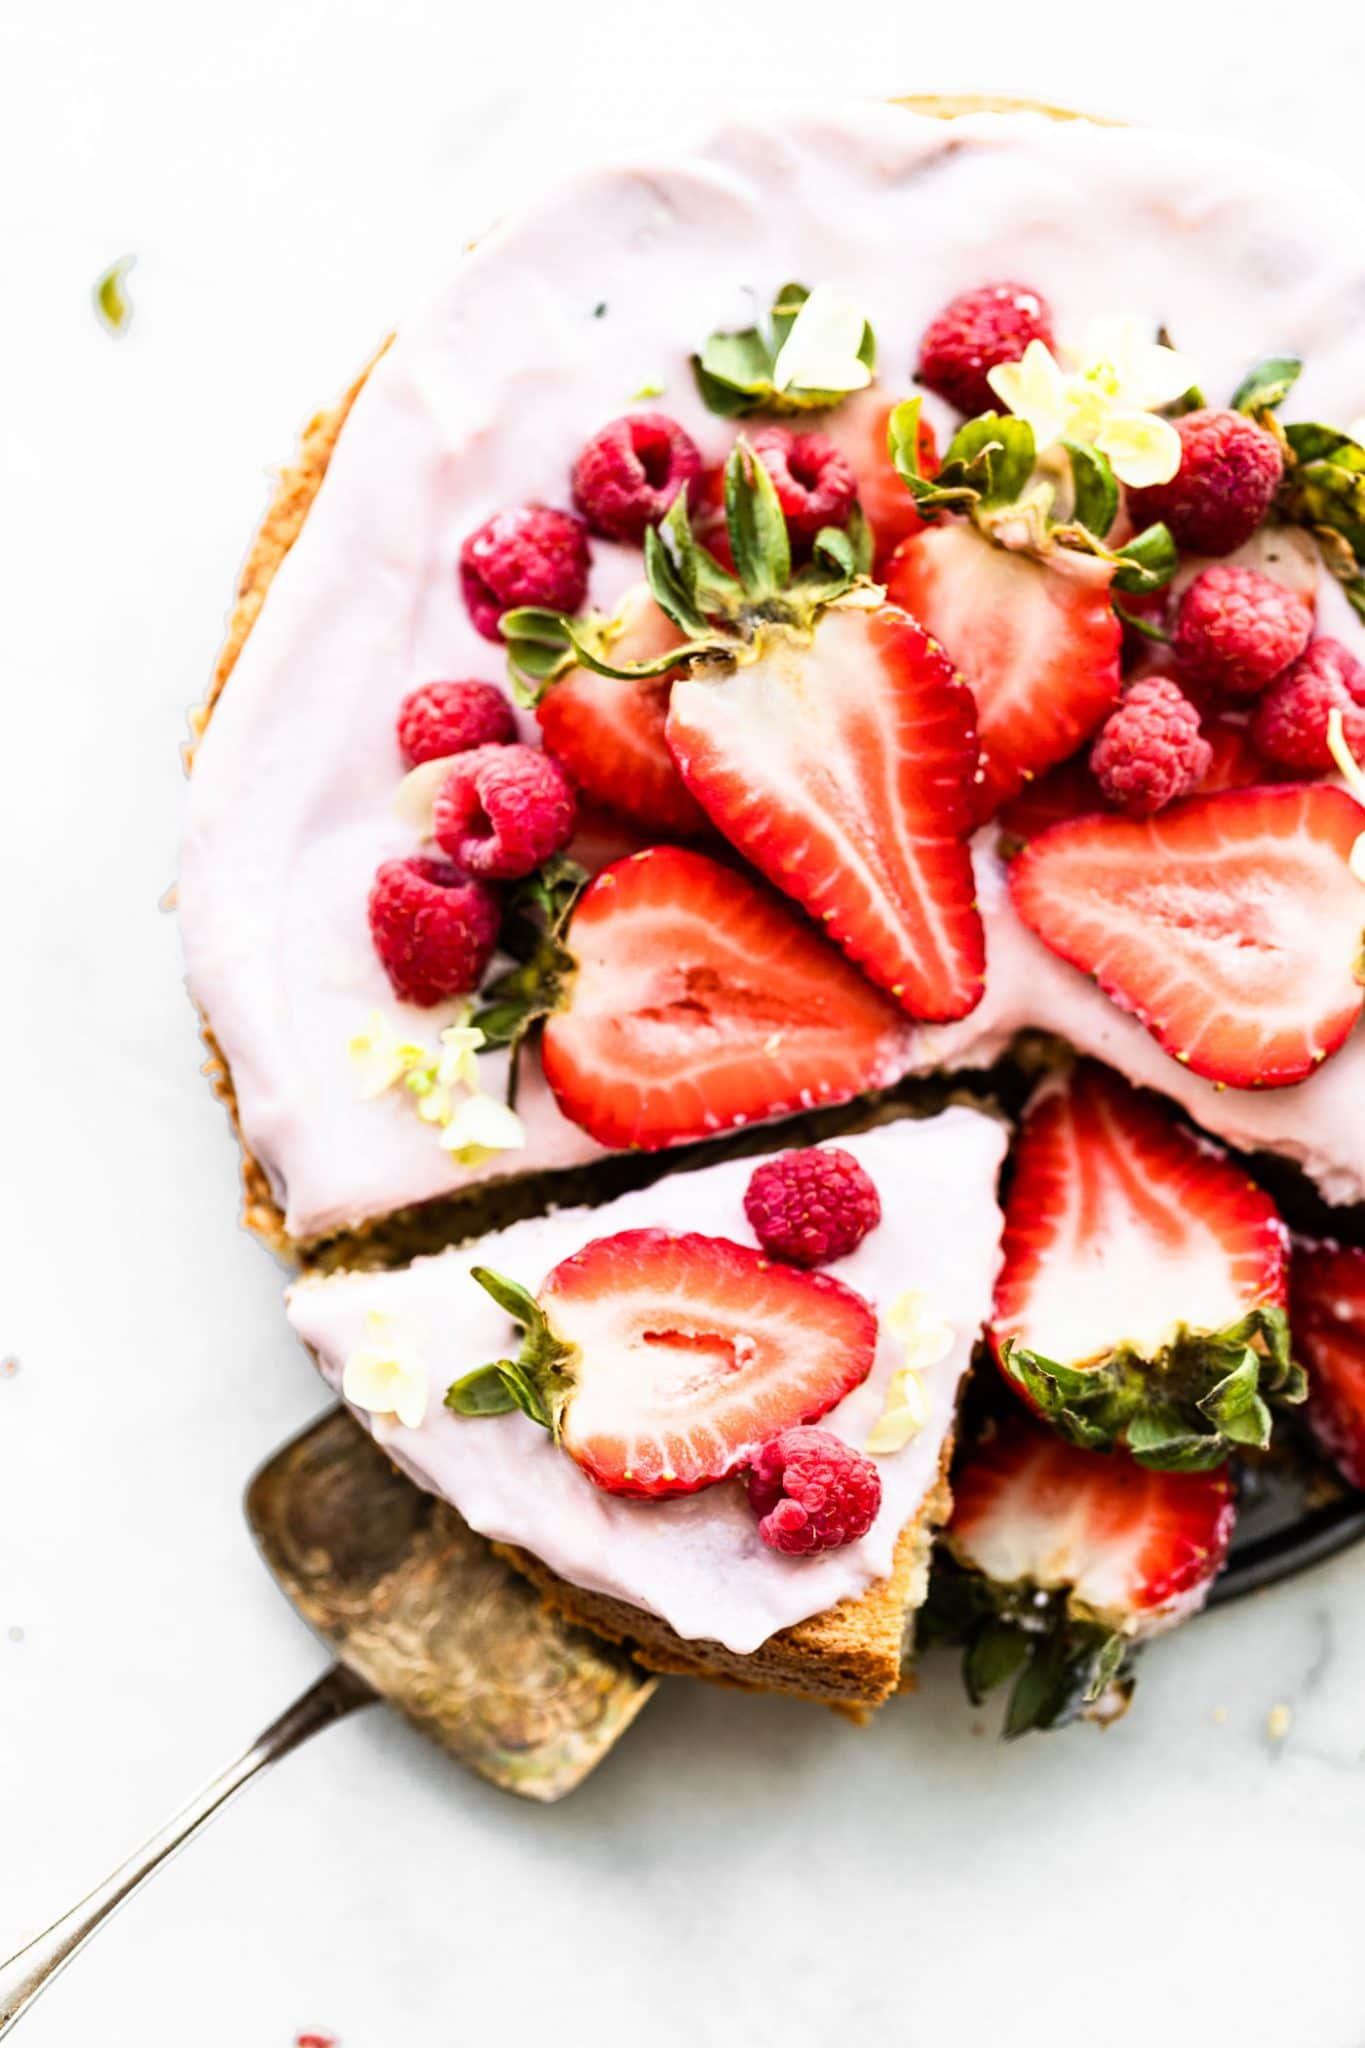 Overhead close up image of almond cake with berry frosting, garnished with fresh berries.